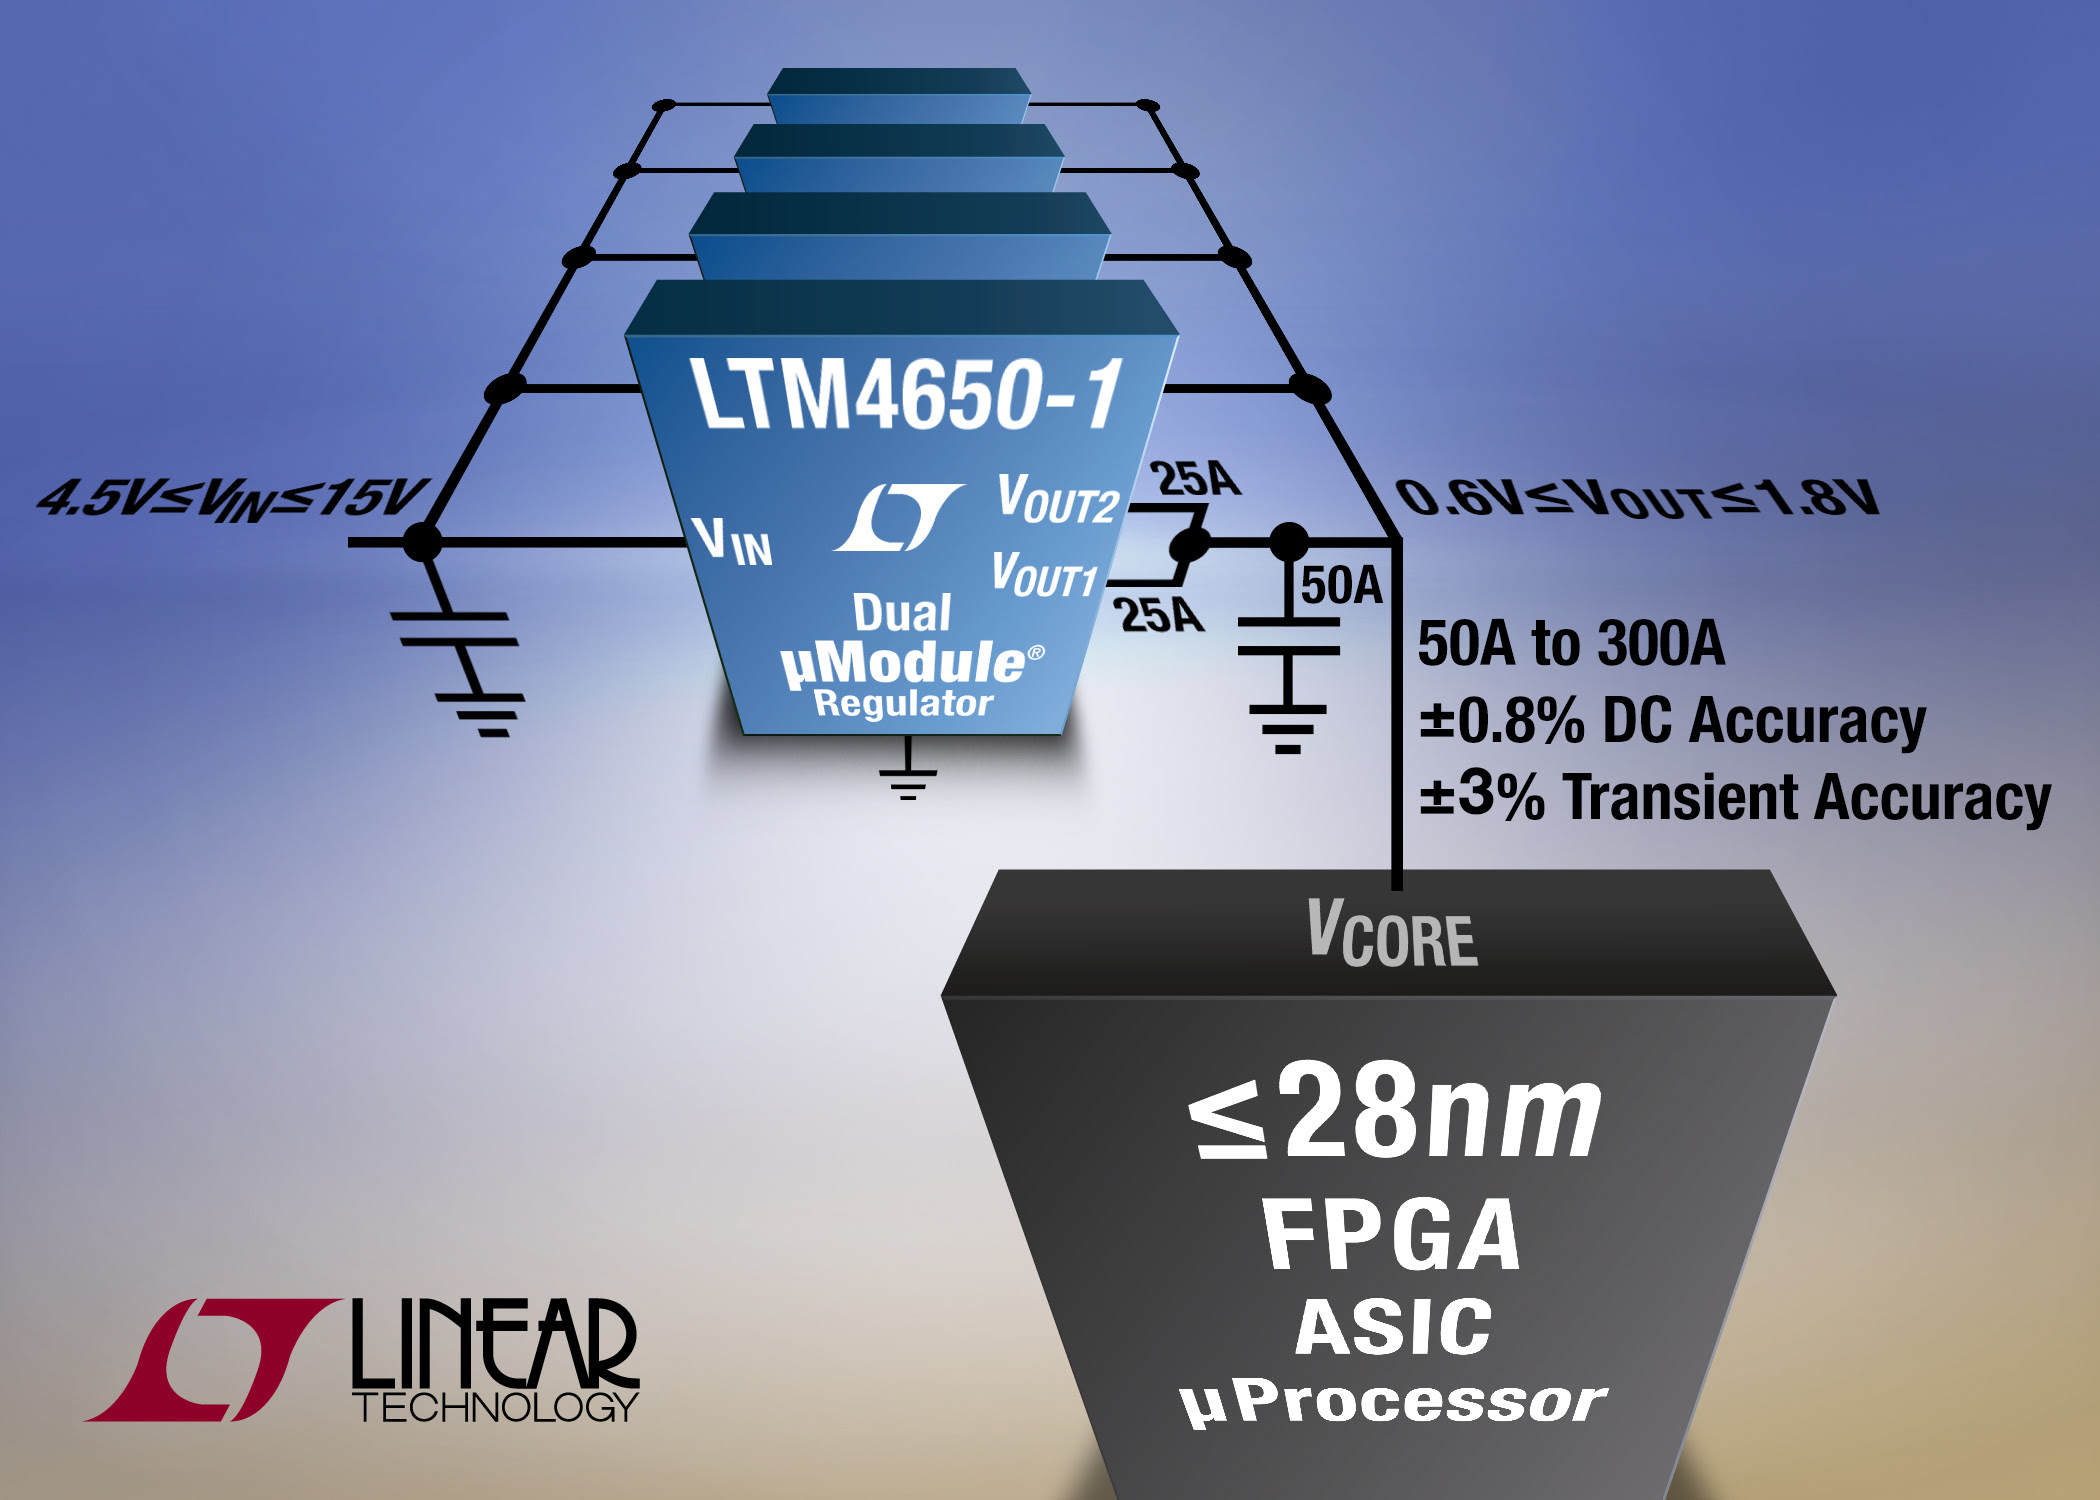 50A to 300A, Scalable ÂμModule Regulator Needs 60% Less Capacitance to Power Sub-28nm GPUs, FPGAs, ASICs & Processors